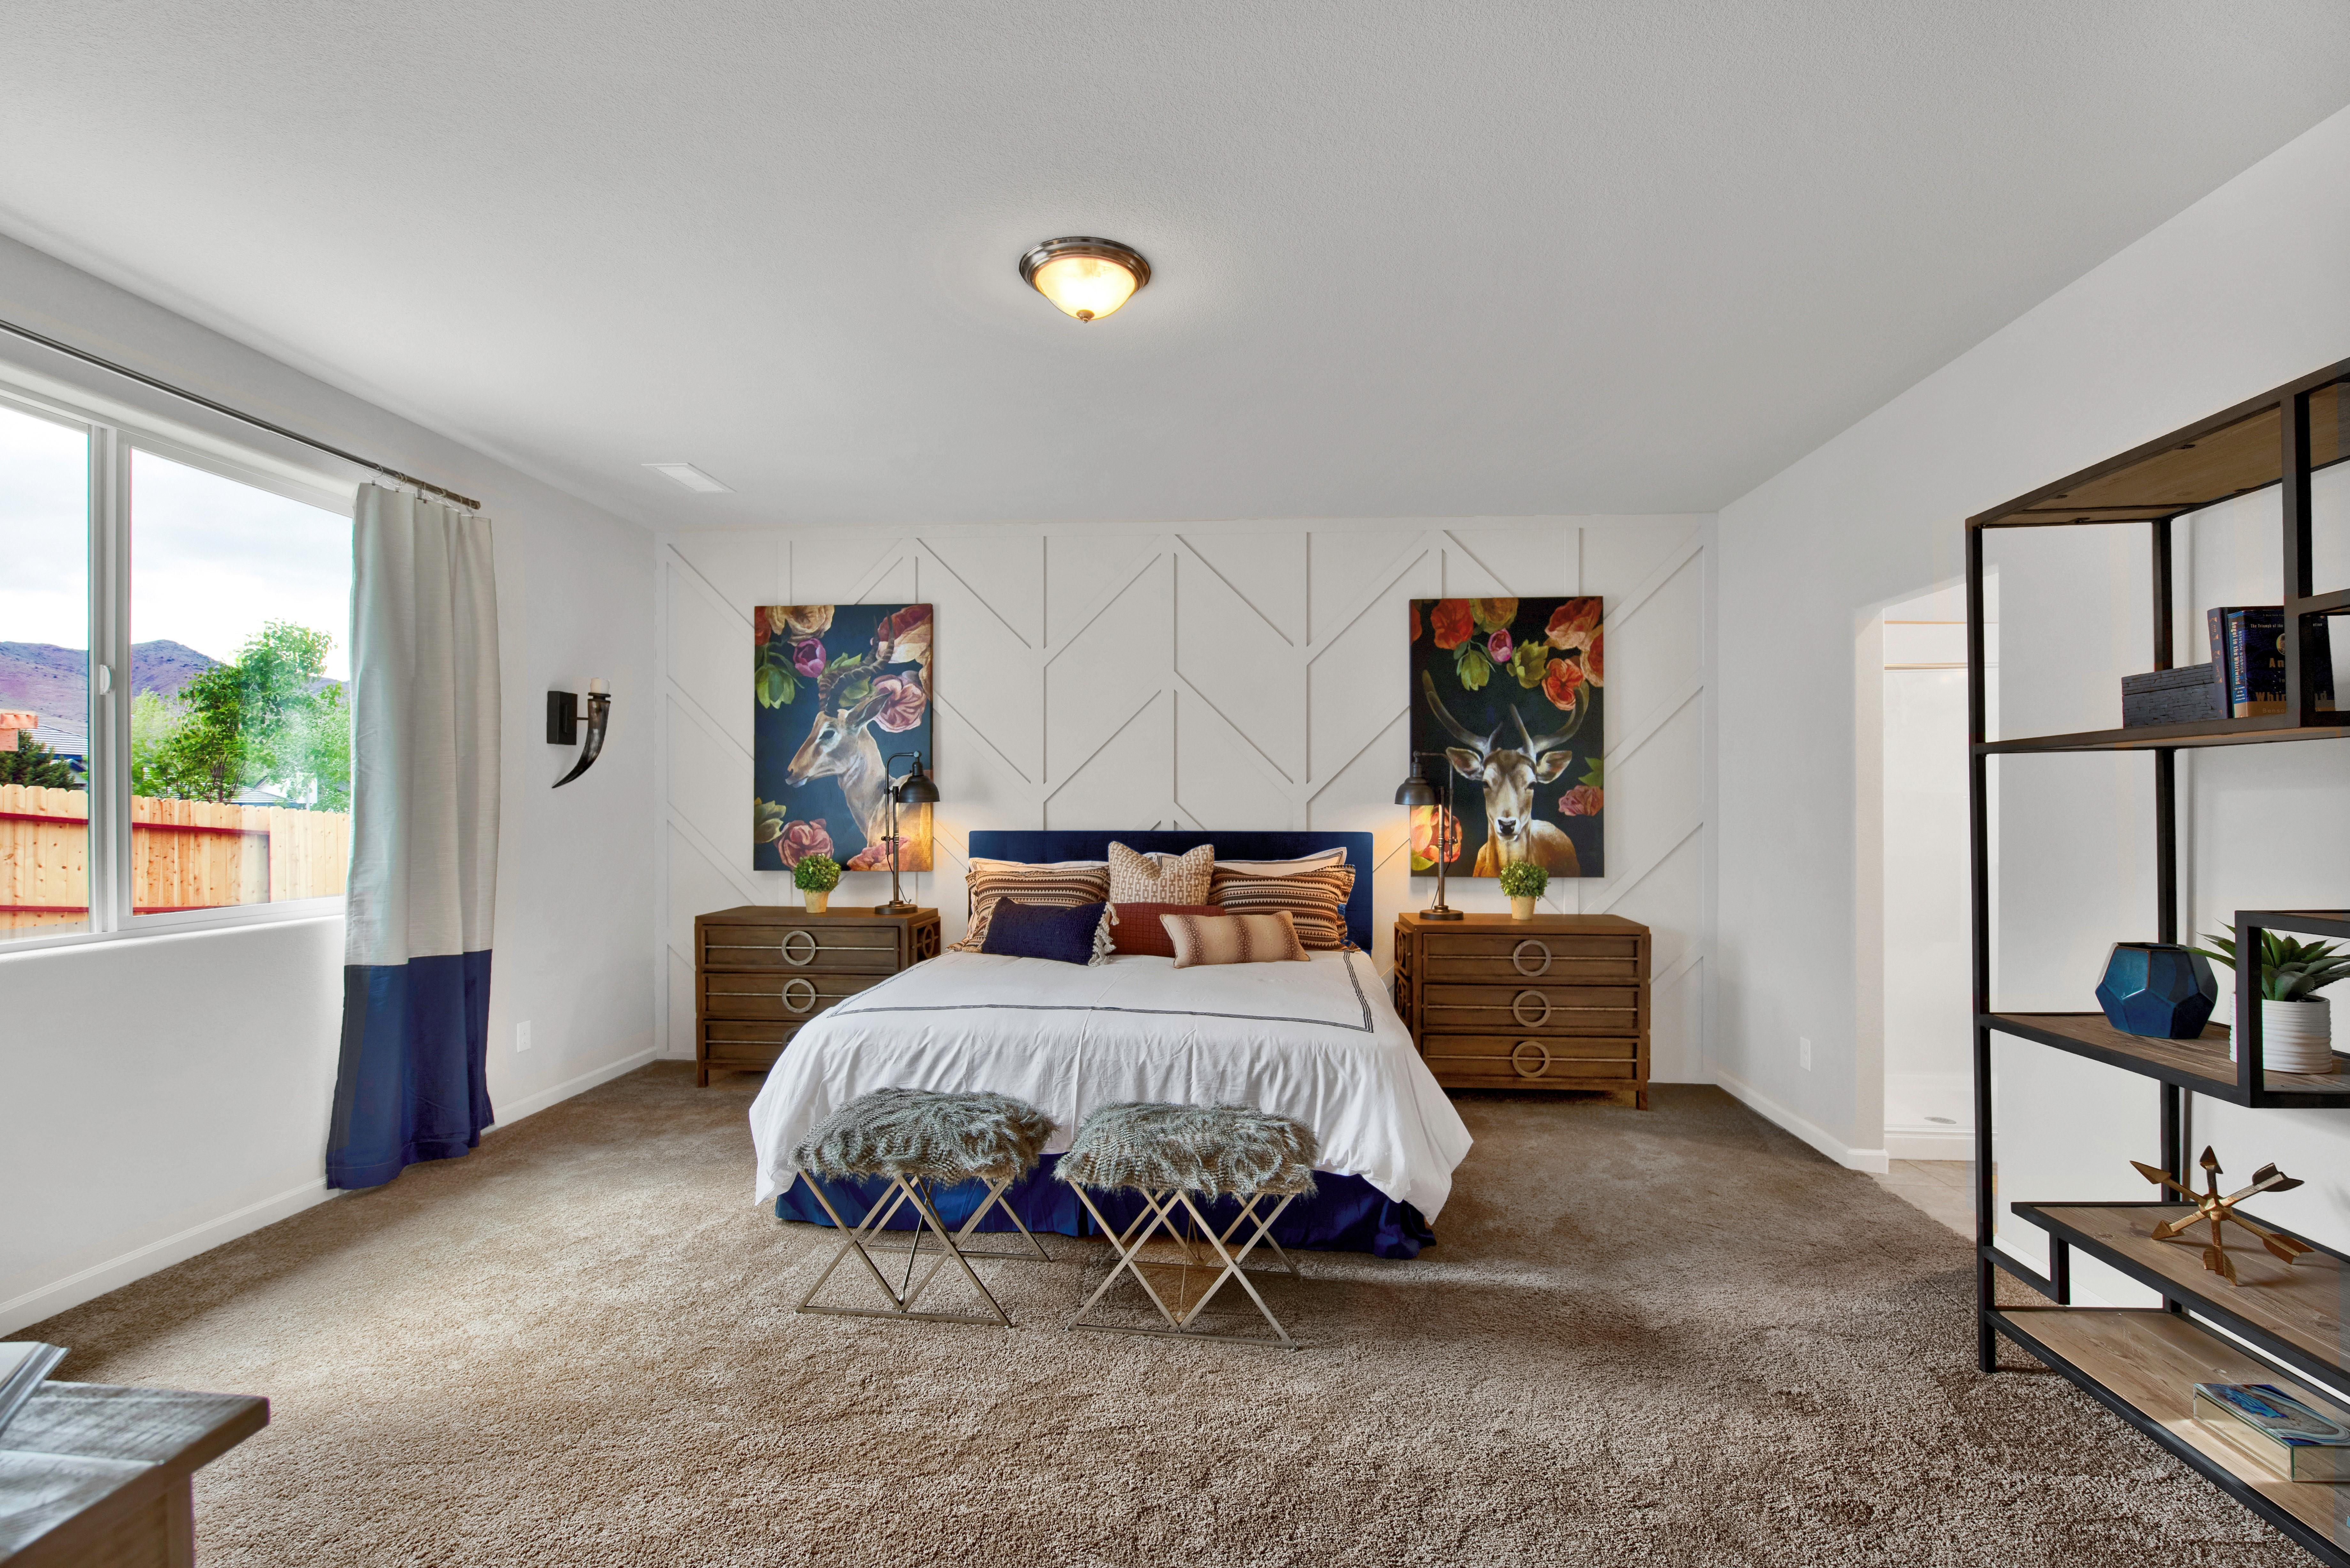 Bedroom featured in the Plan 1 By Santa Ynez Valley Construction in Reno, NV